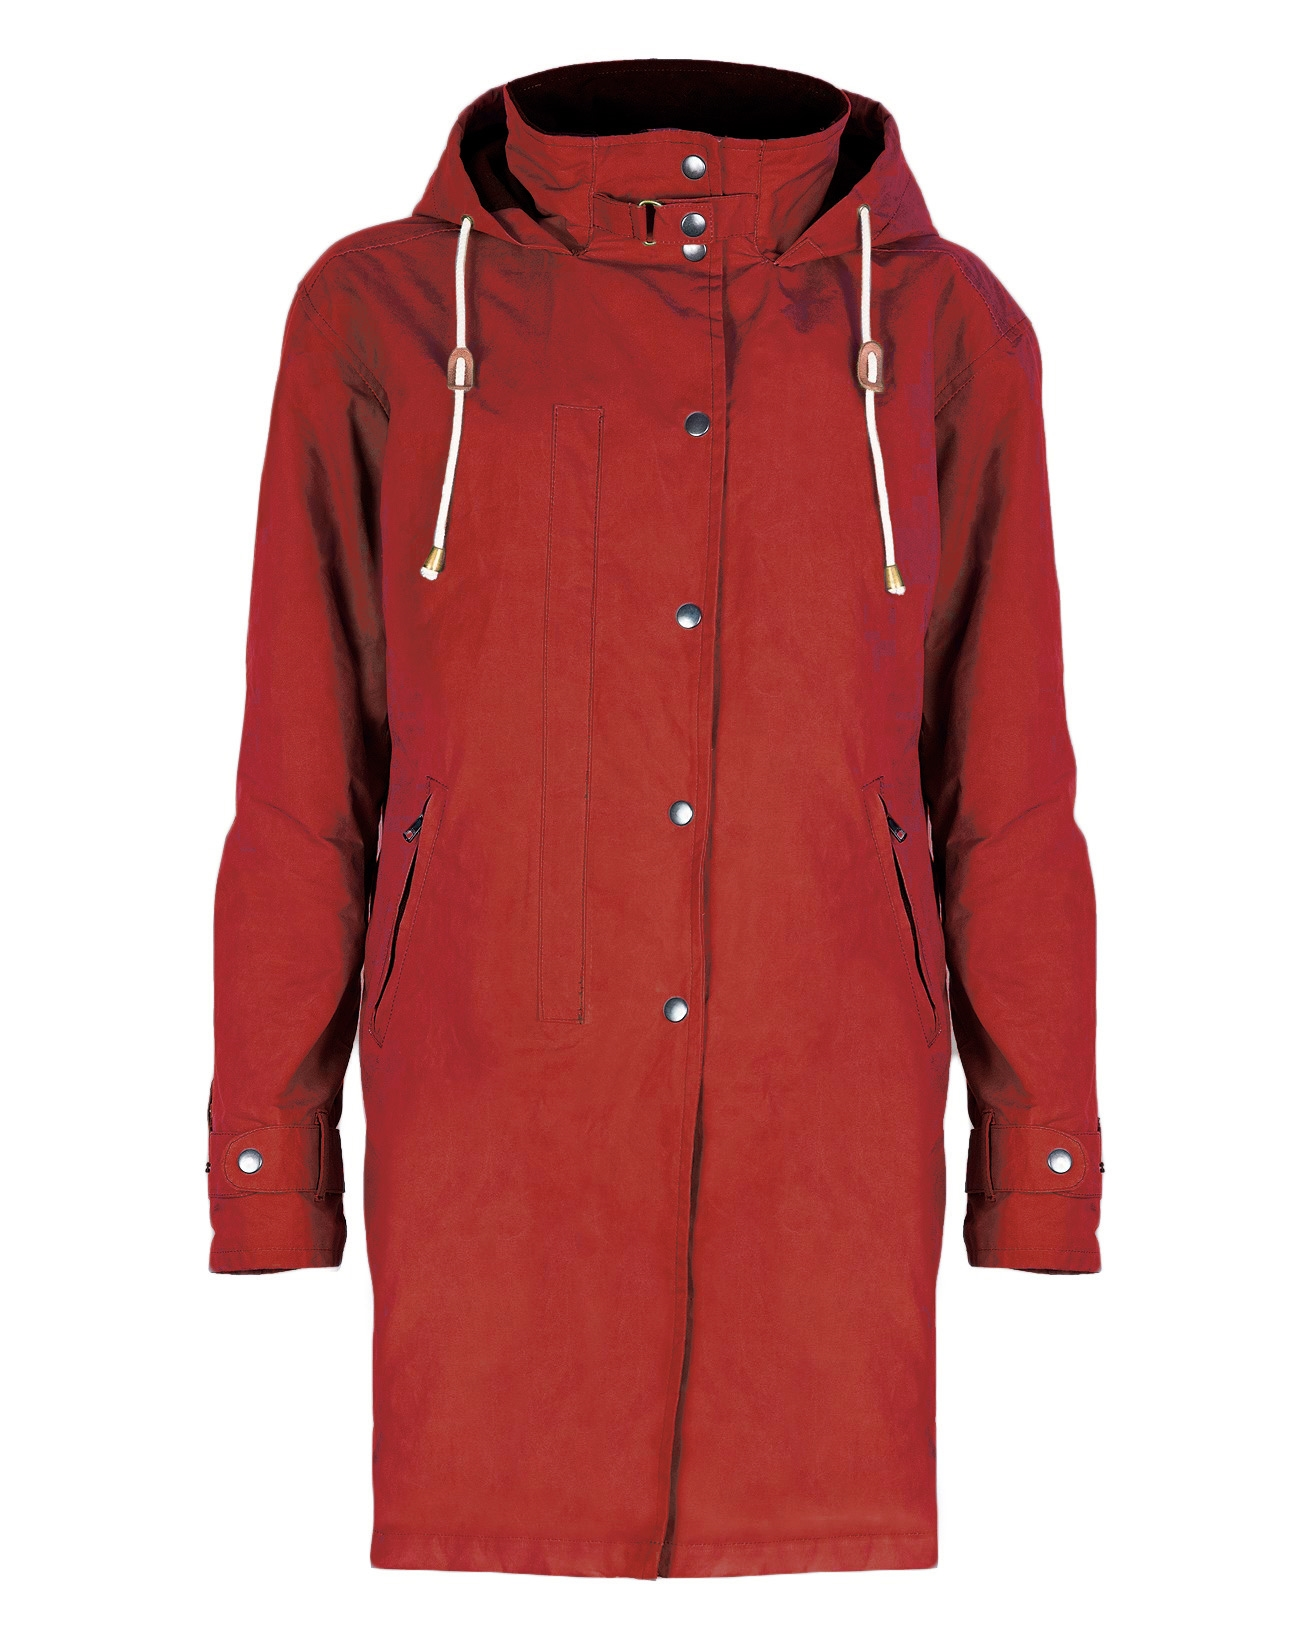 waxed cotton parka-red.jpg